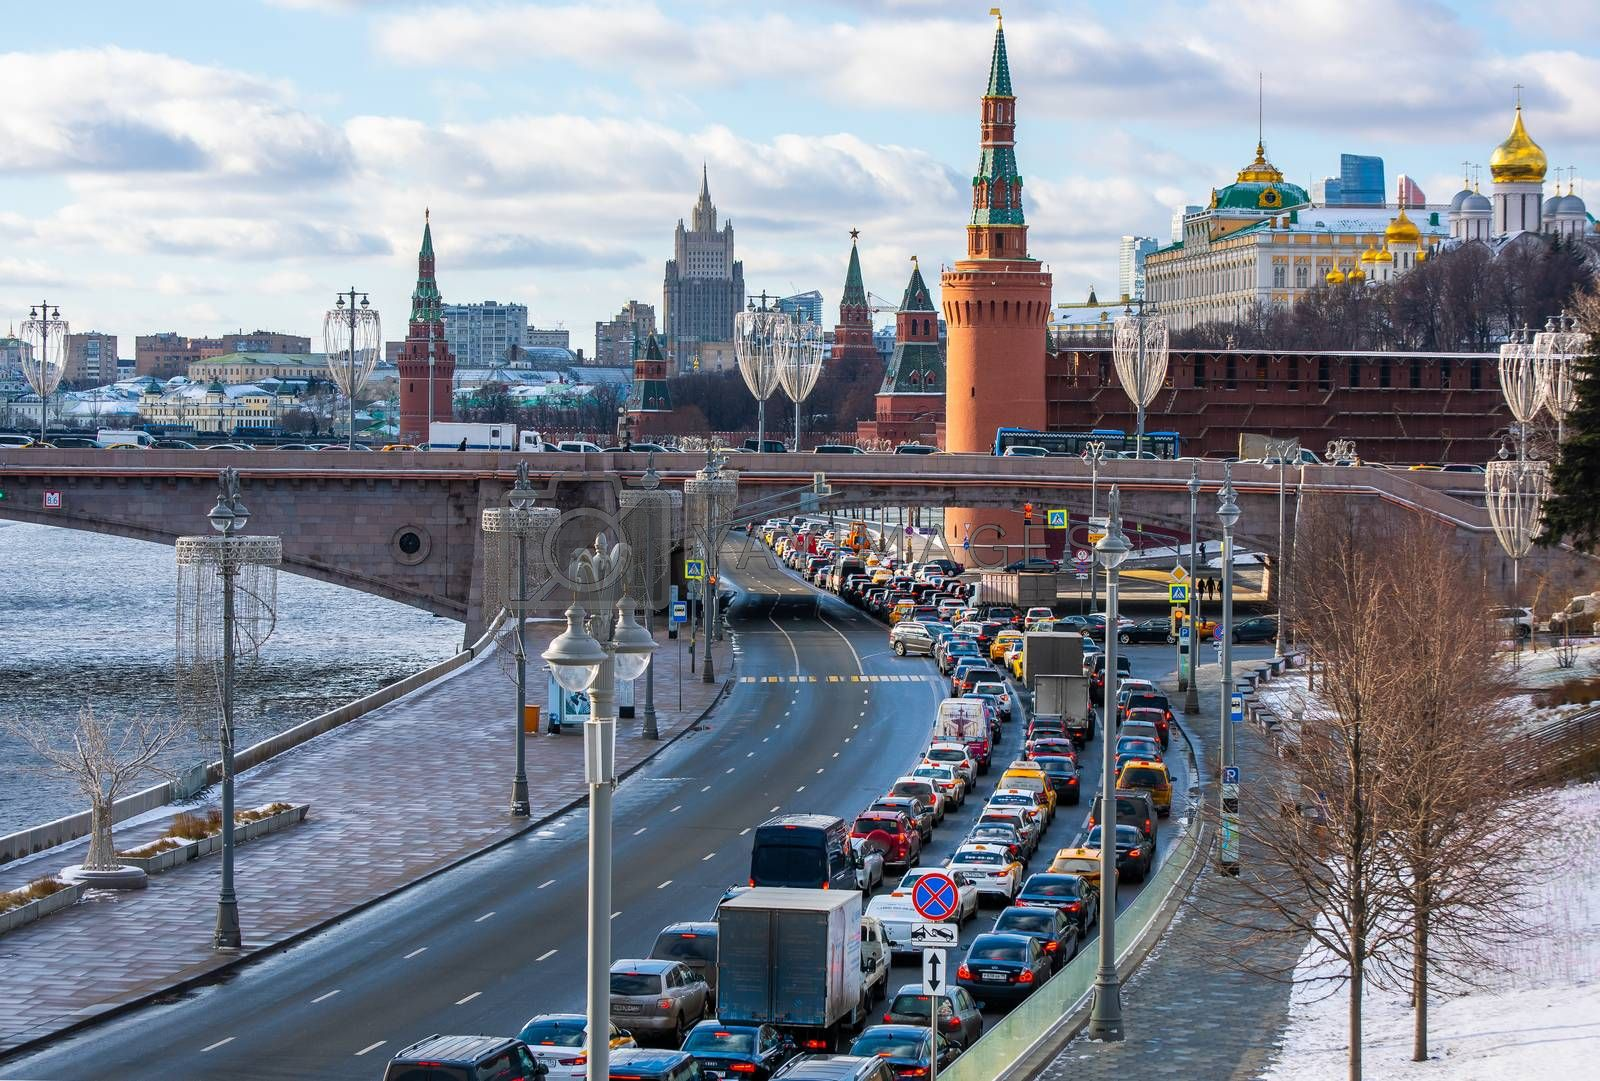 February 5, 2020 Moscow, Russia, Traffic jam on the Kremlin embankment in Moscow.